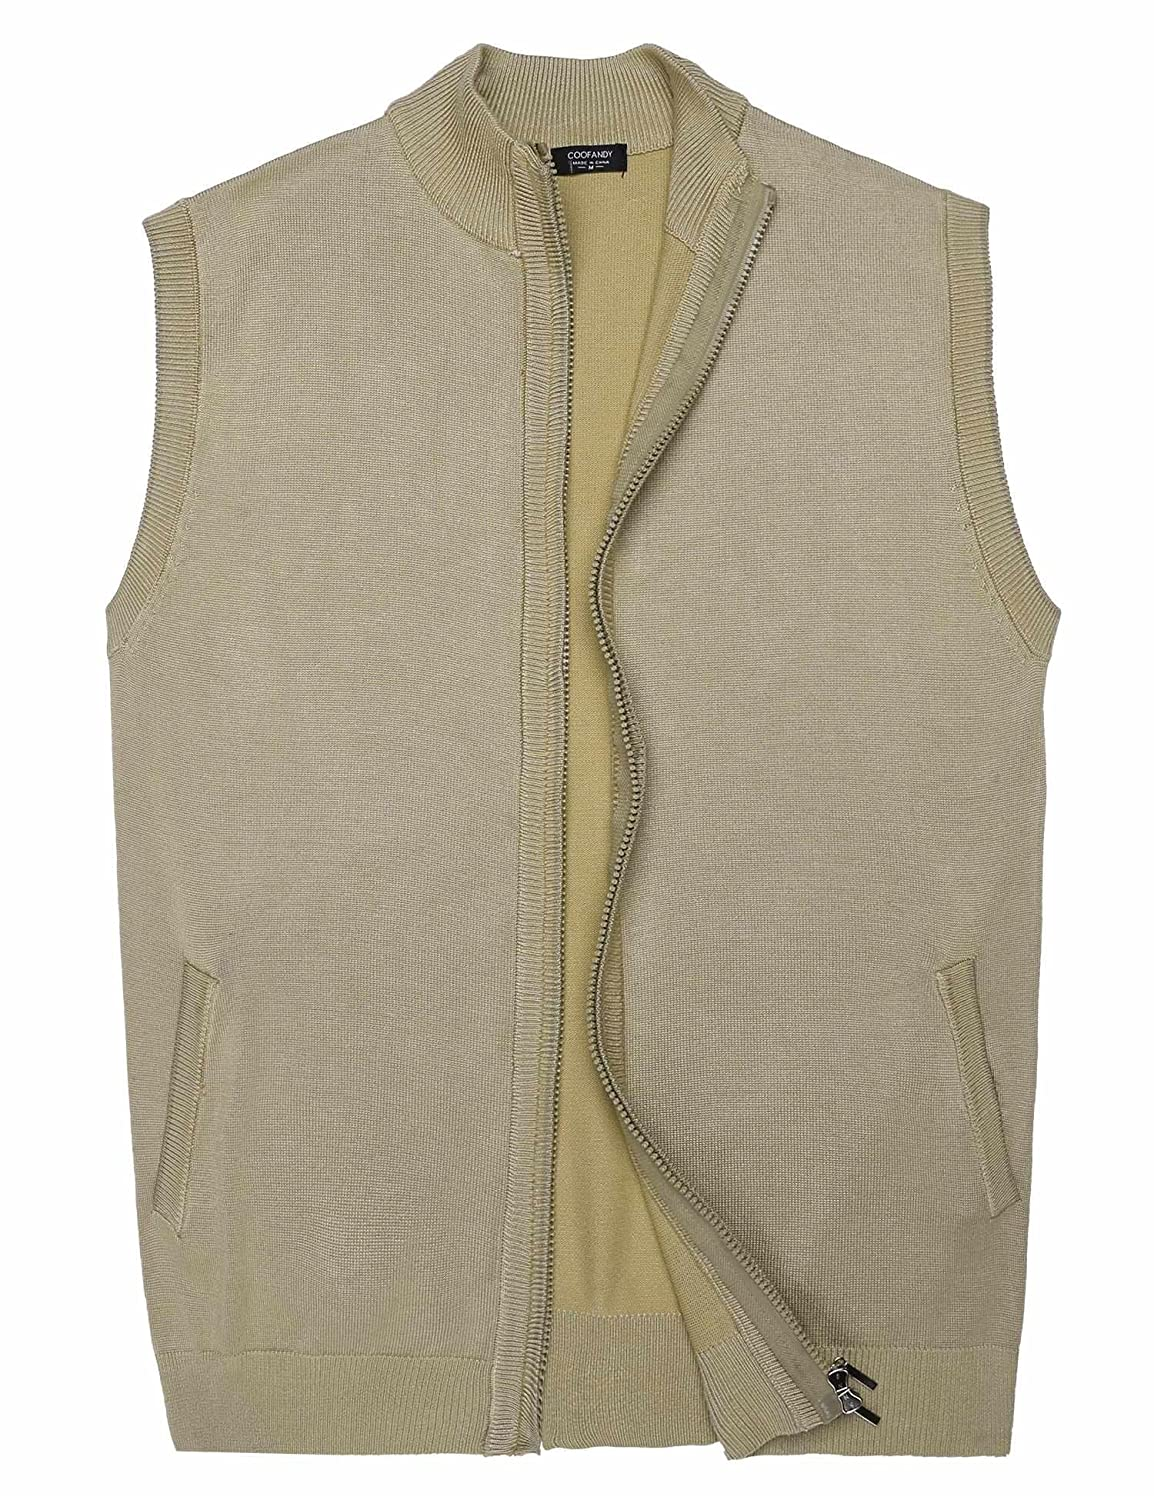 COOFANDY Men's Slim Knitted Cardigan Full Zip up Sweater Vest with Pocket